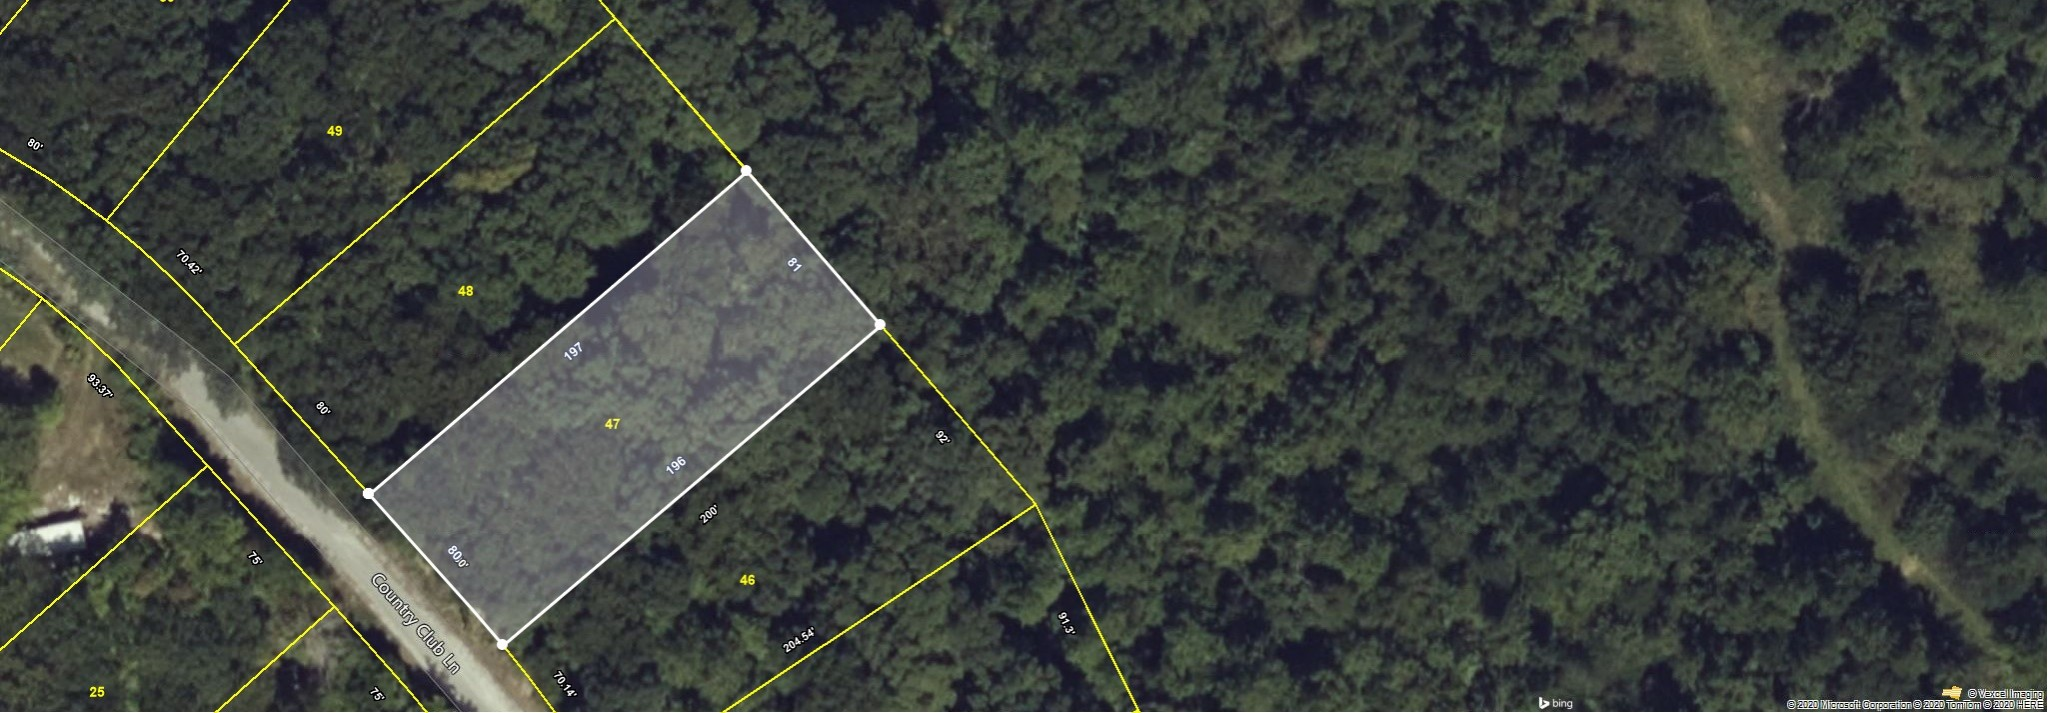 0 Country Clb Ln. LOT 47 Property Photo - Holladay, TN real estate listing